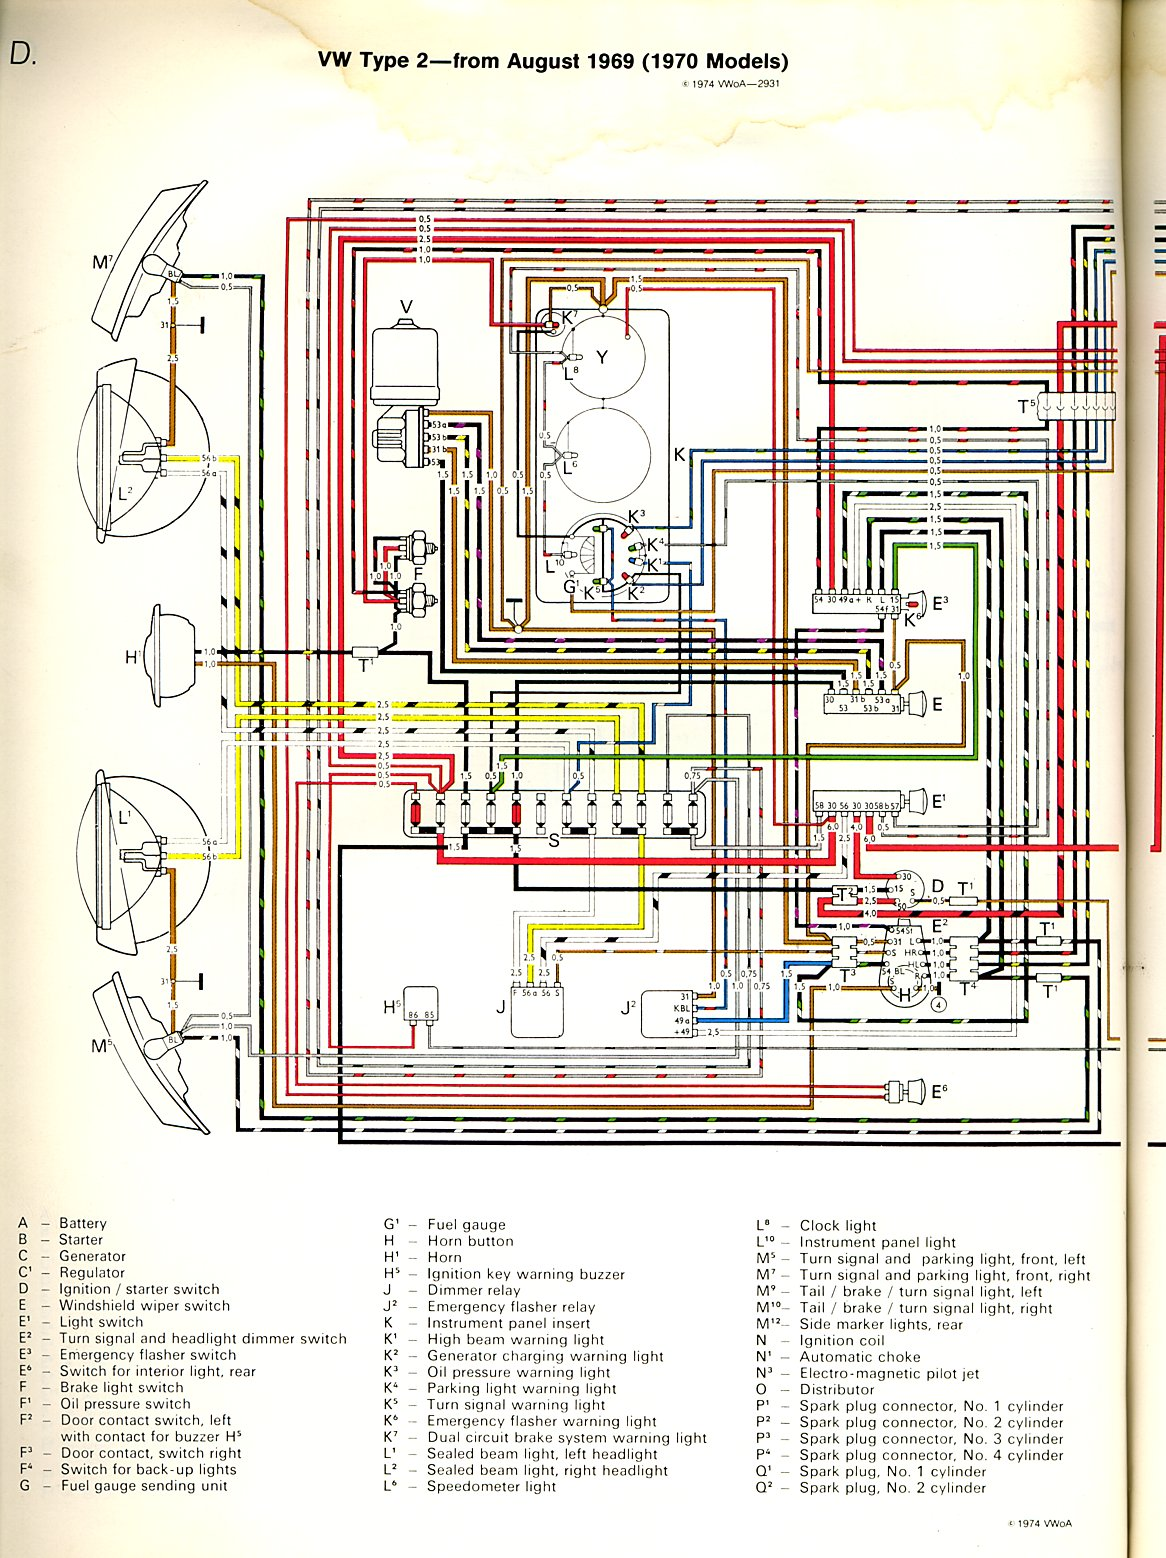 thesamba com type 2 wiring diagrams 1980 Corvette Fuse Box Diagram 1980 Corvette Fuse Box Diagram